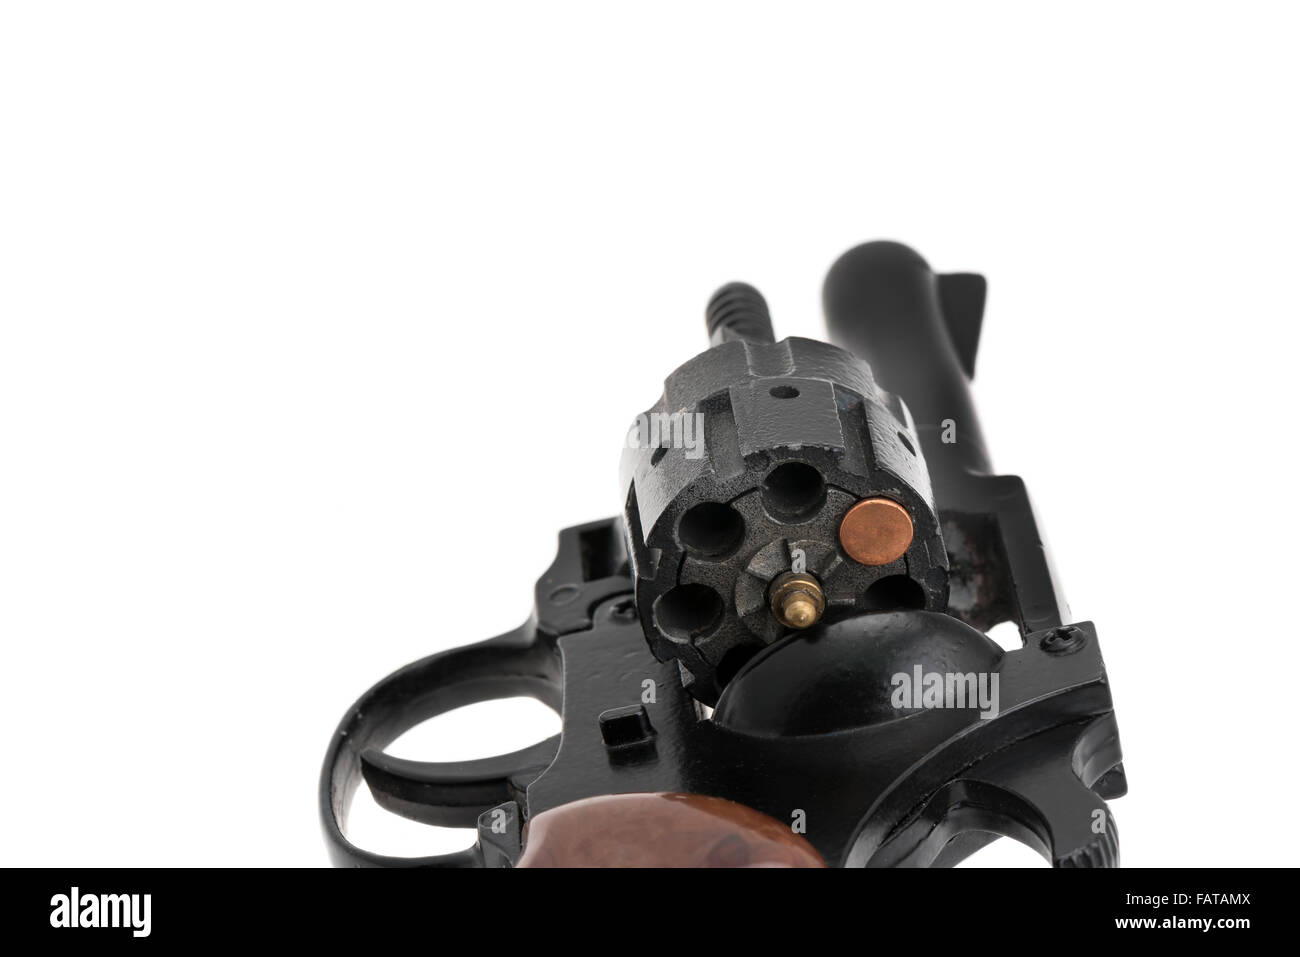 Loaded gun with a single bullet - Russian roulette concept - white background - Stock Image